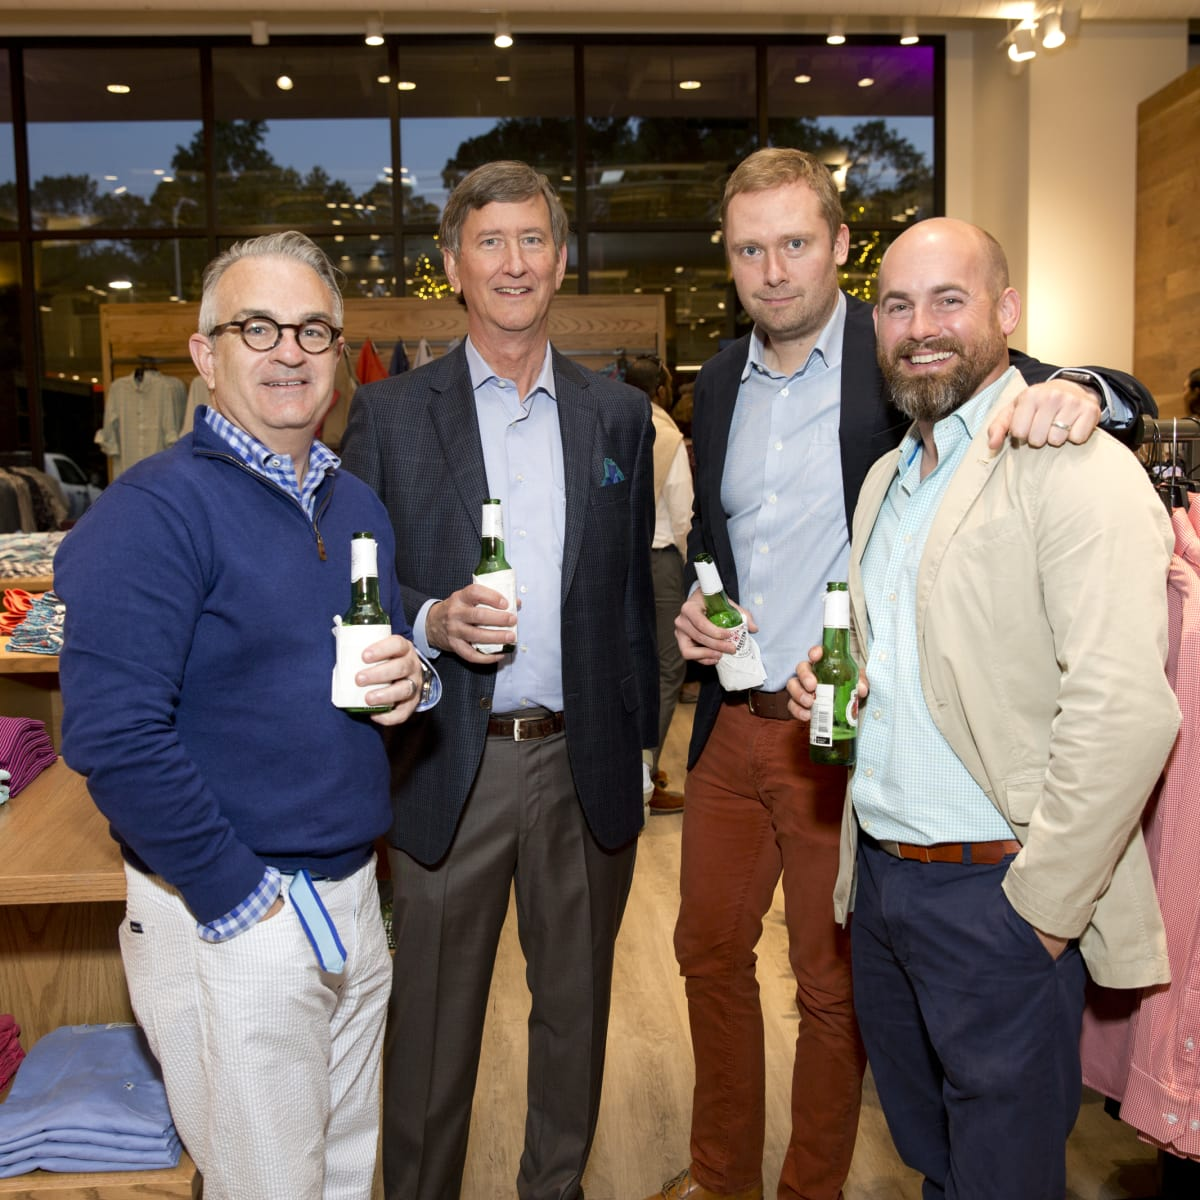 Houston, Saint Bernard opening party, April 2016, Jim Farrell, Richard Callicutt, Ryan Meyer, Chris Cummings